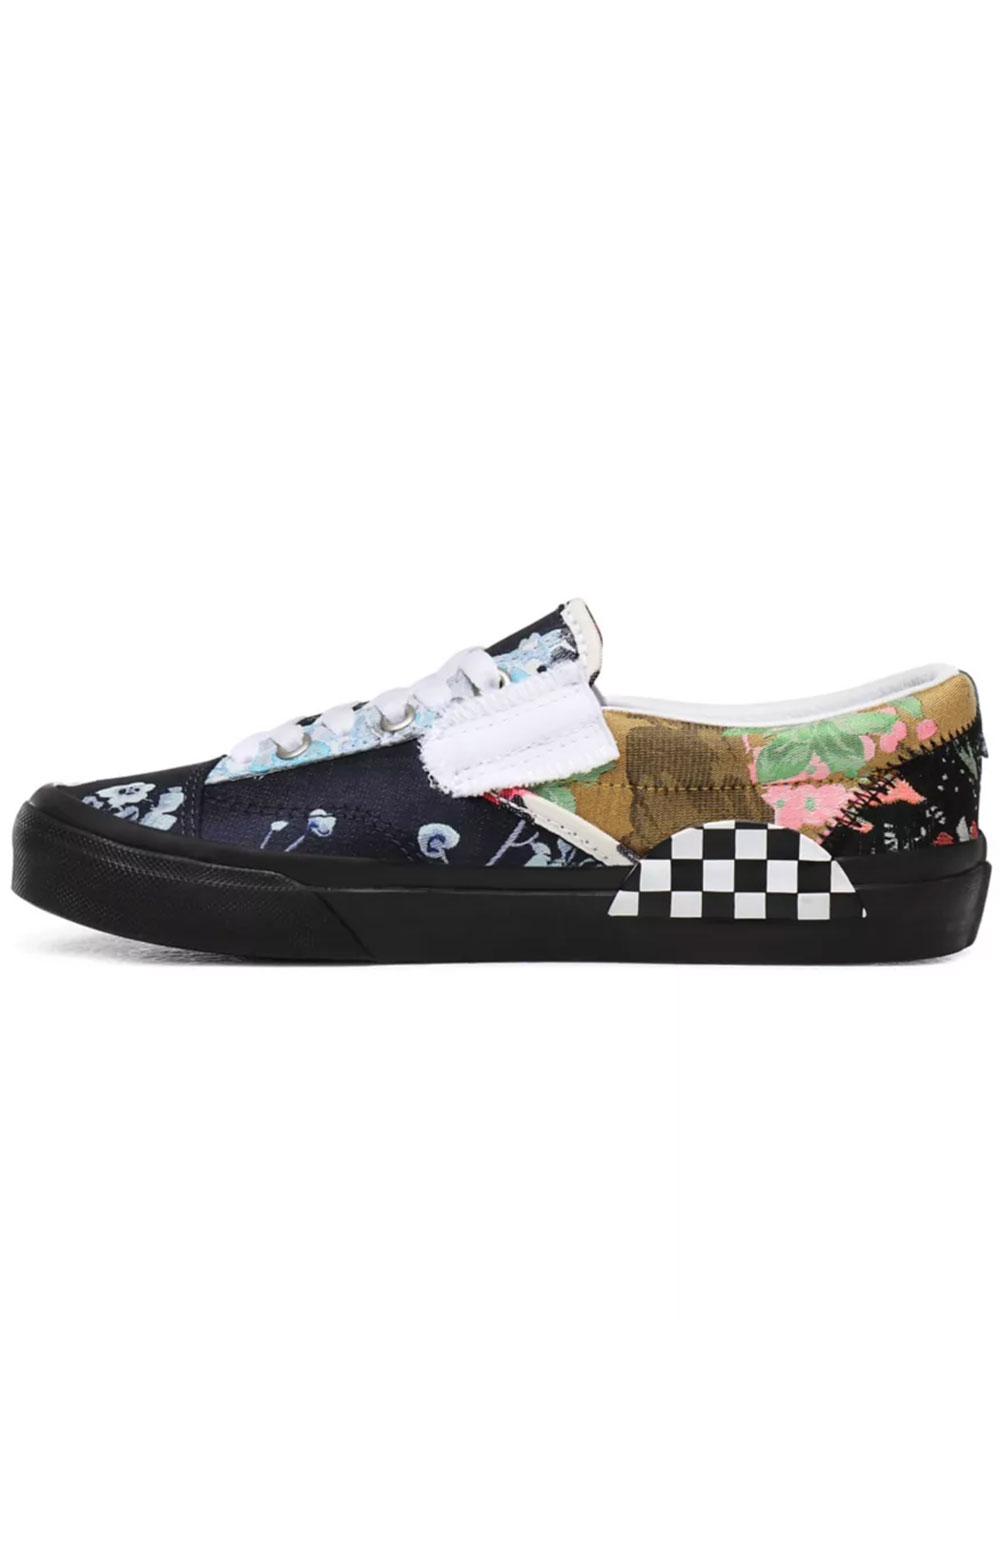 (WM5XHQ) Florals Classic Slip-On Cap Shoe - Brocade  4